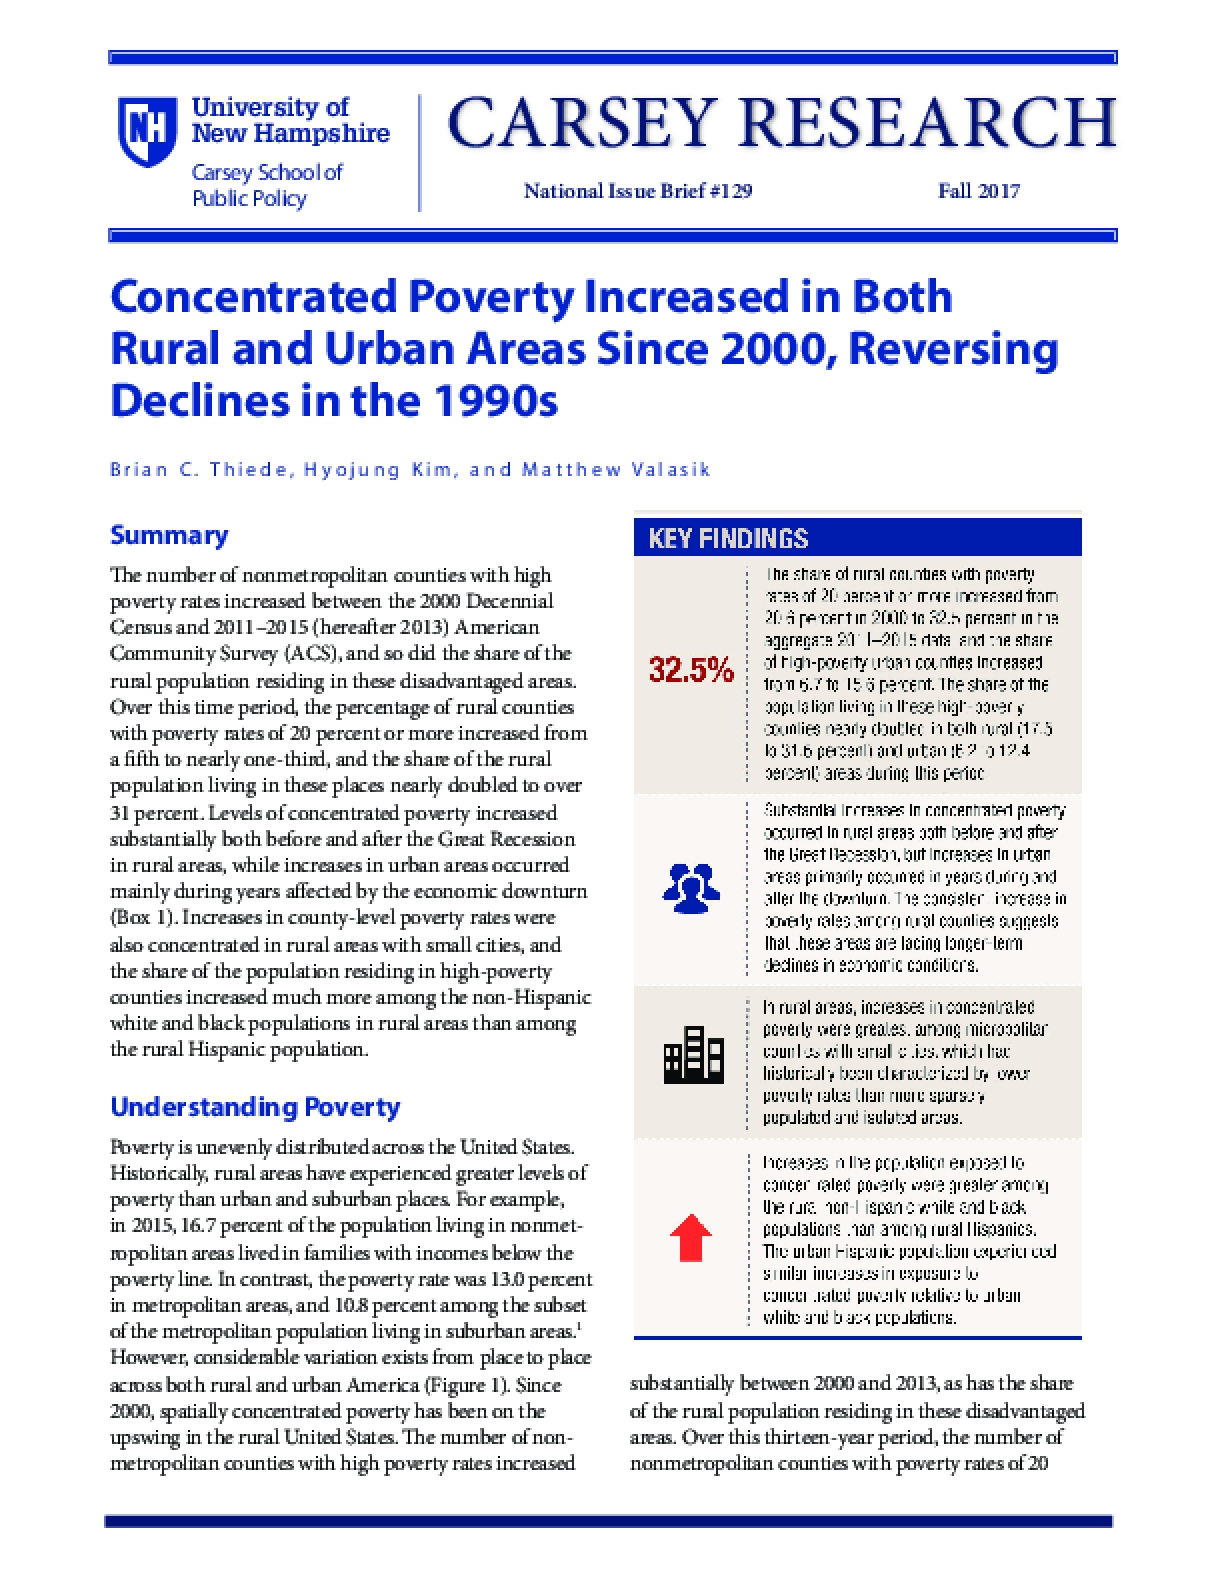 Concentrated Poverty Increased in Both Rural and Urban Areas Since 2000, Reversing Declines in the 1990s